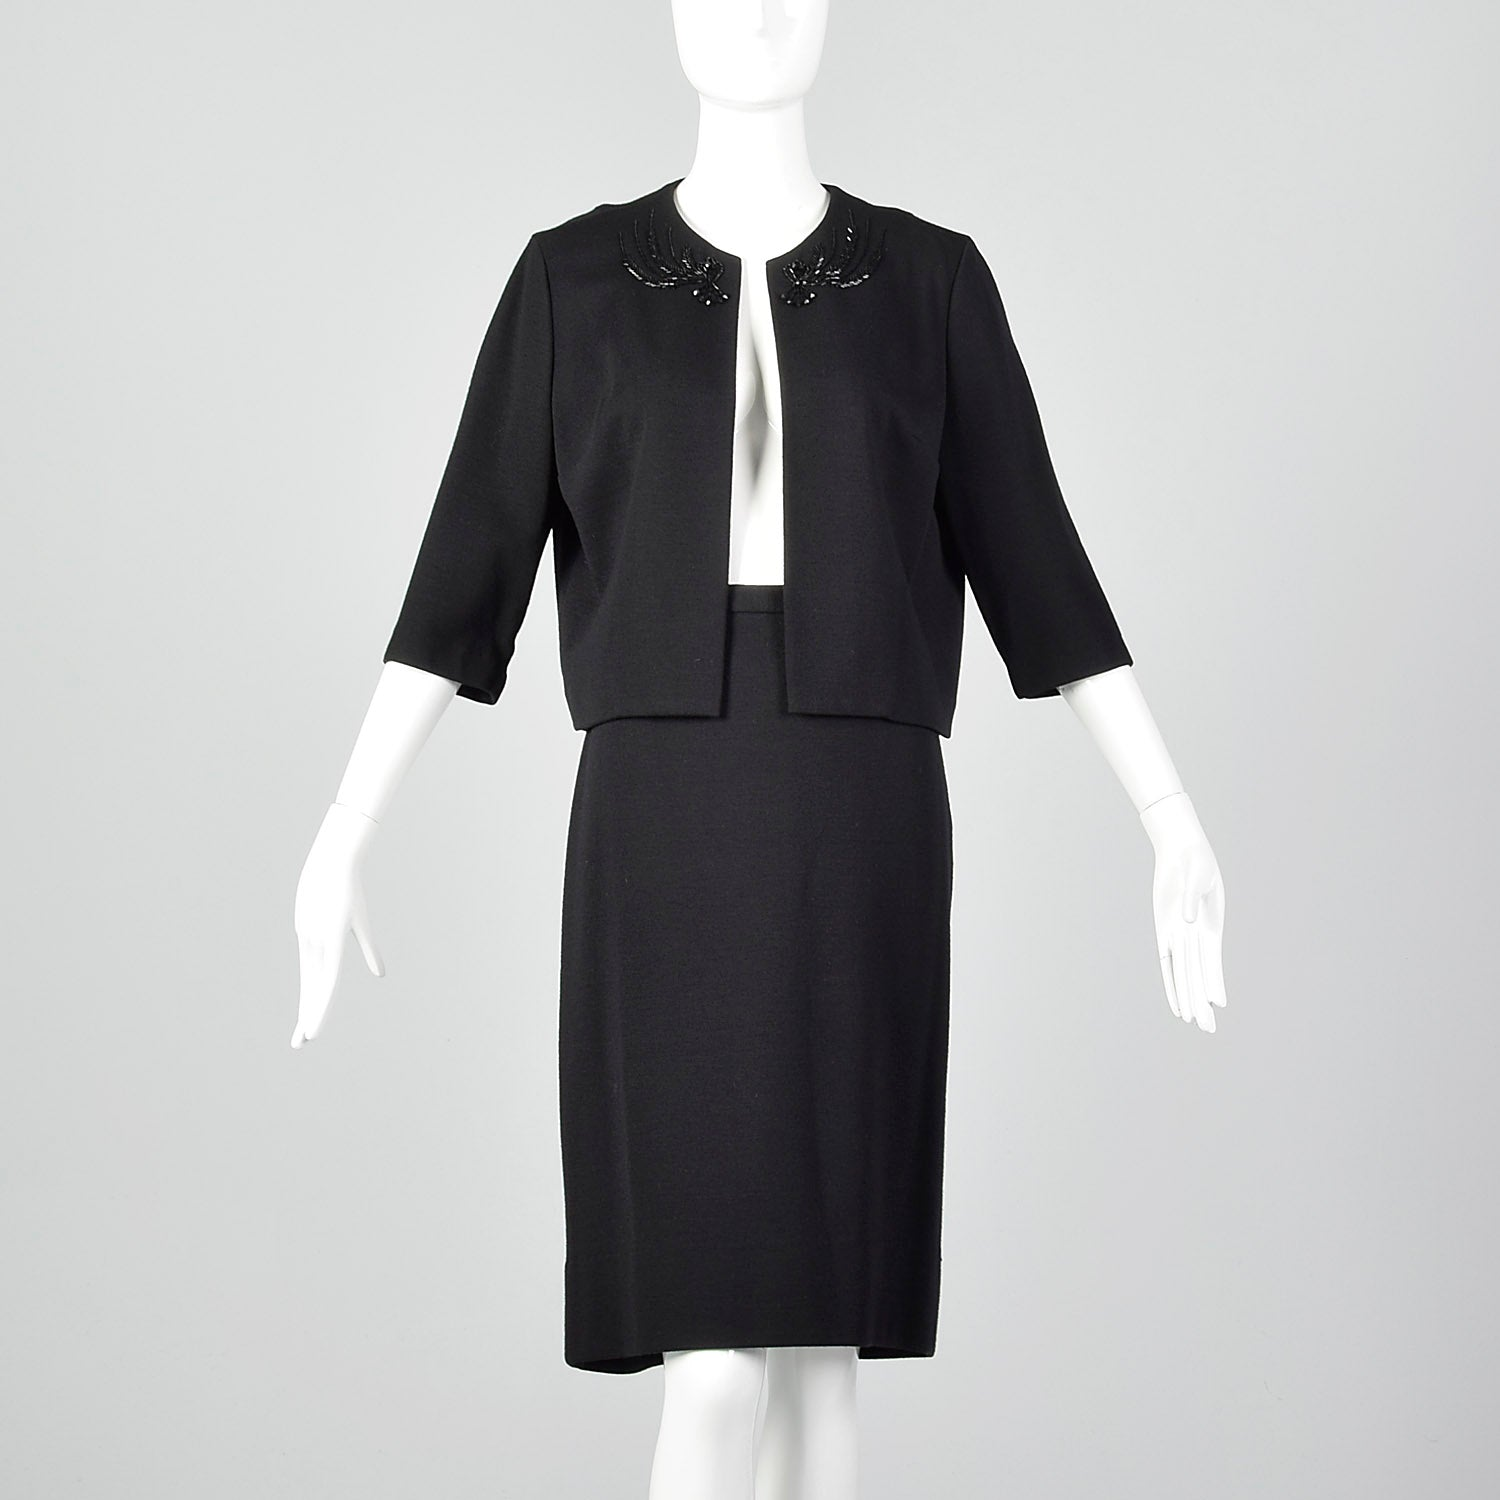 1960s Black Two Piece Knit Skirt Set